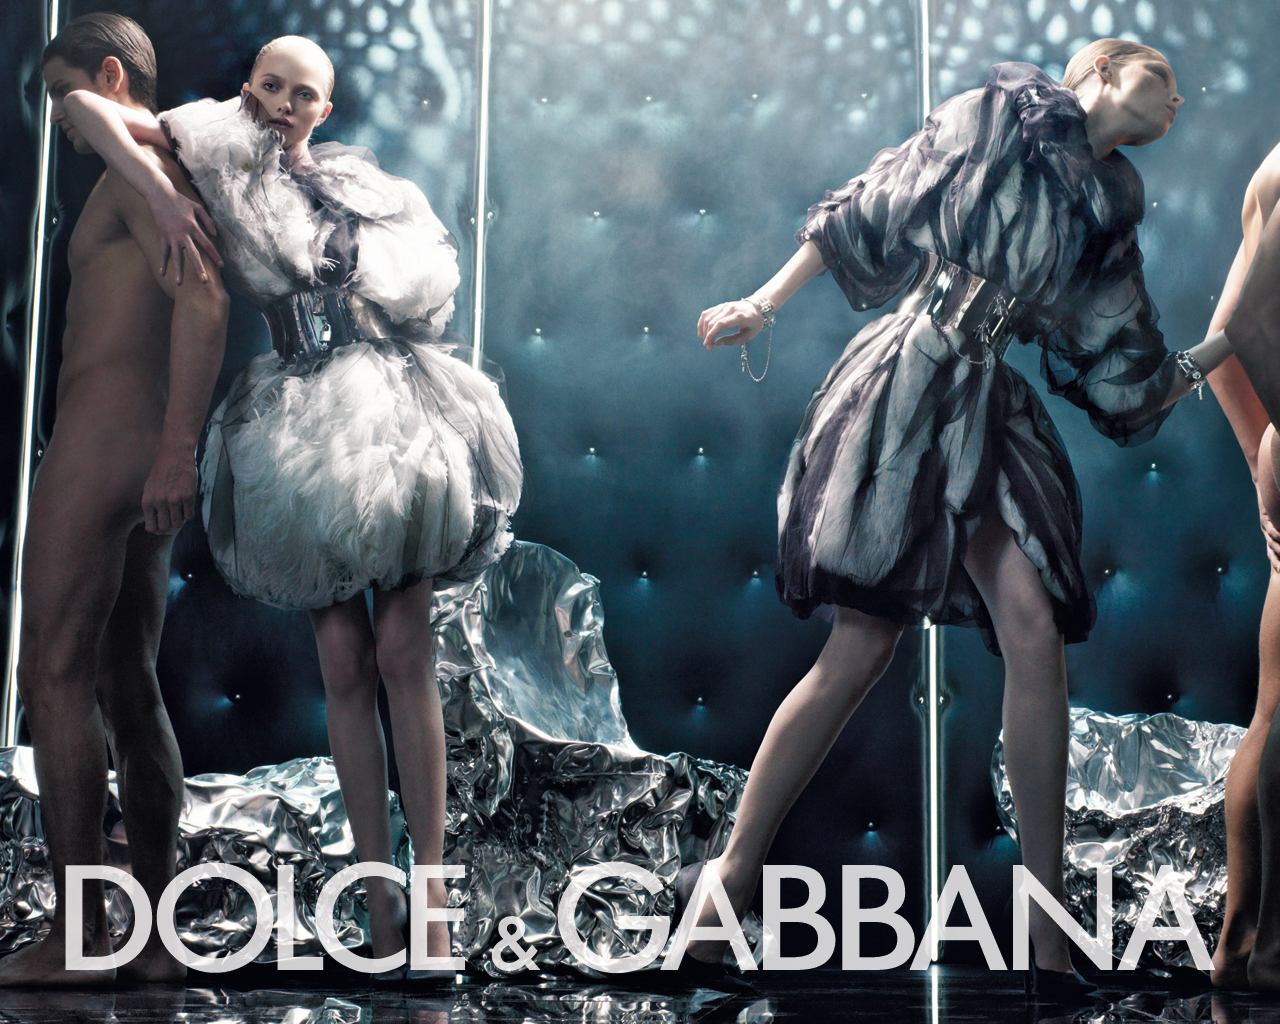 Passion For Fashion Images Dolce Gabbana Wallpaper Hd Wallpaper And Background Photos